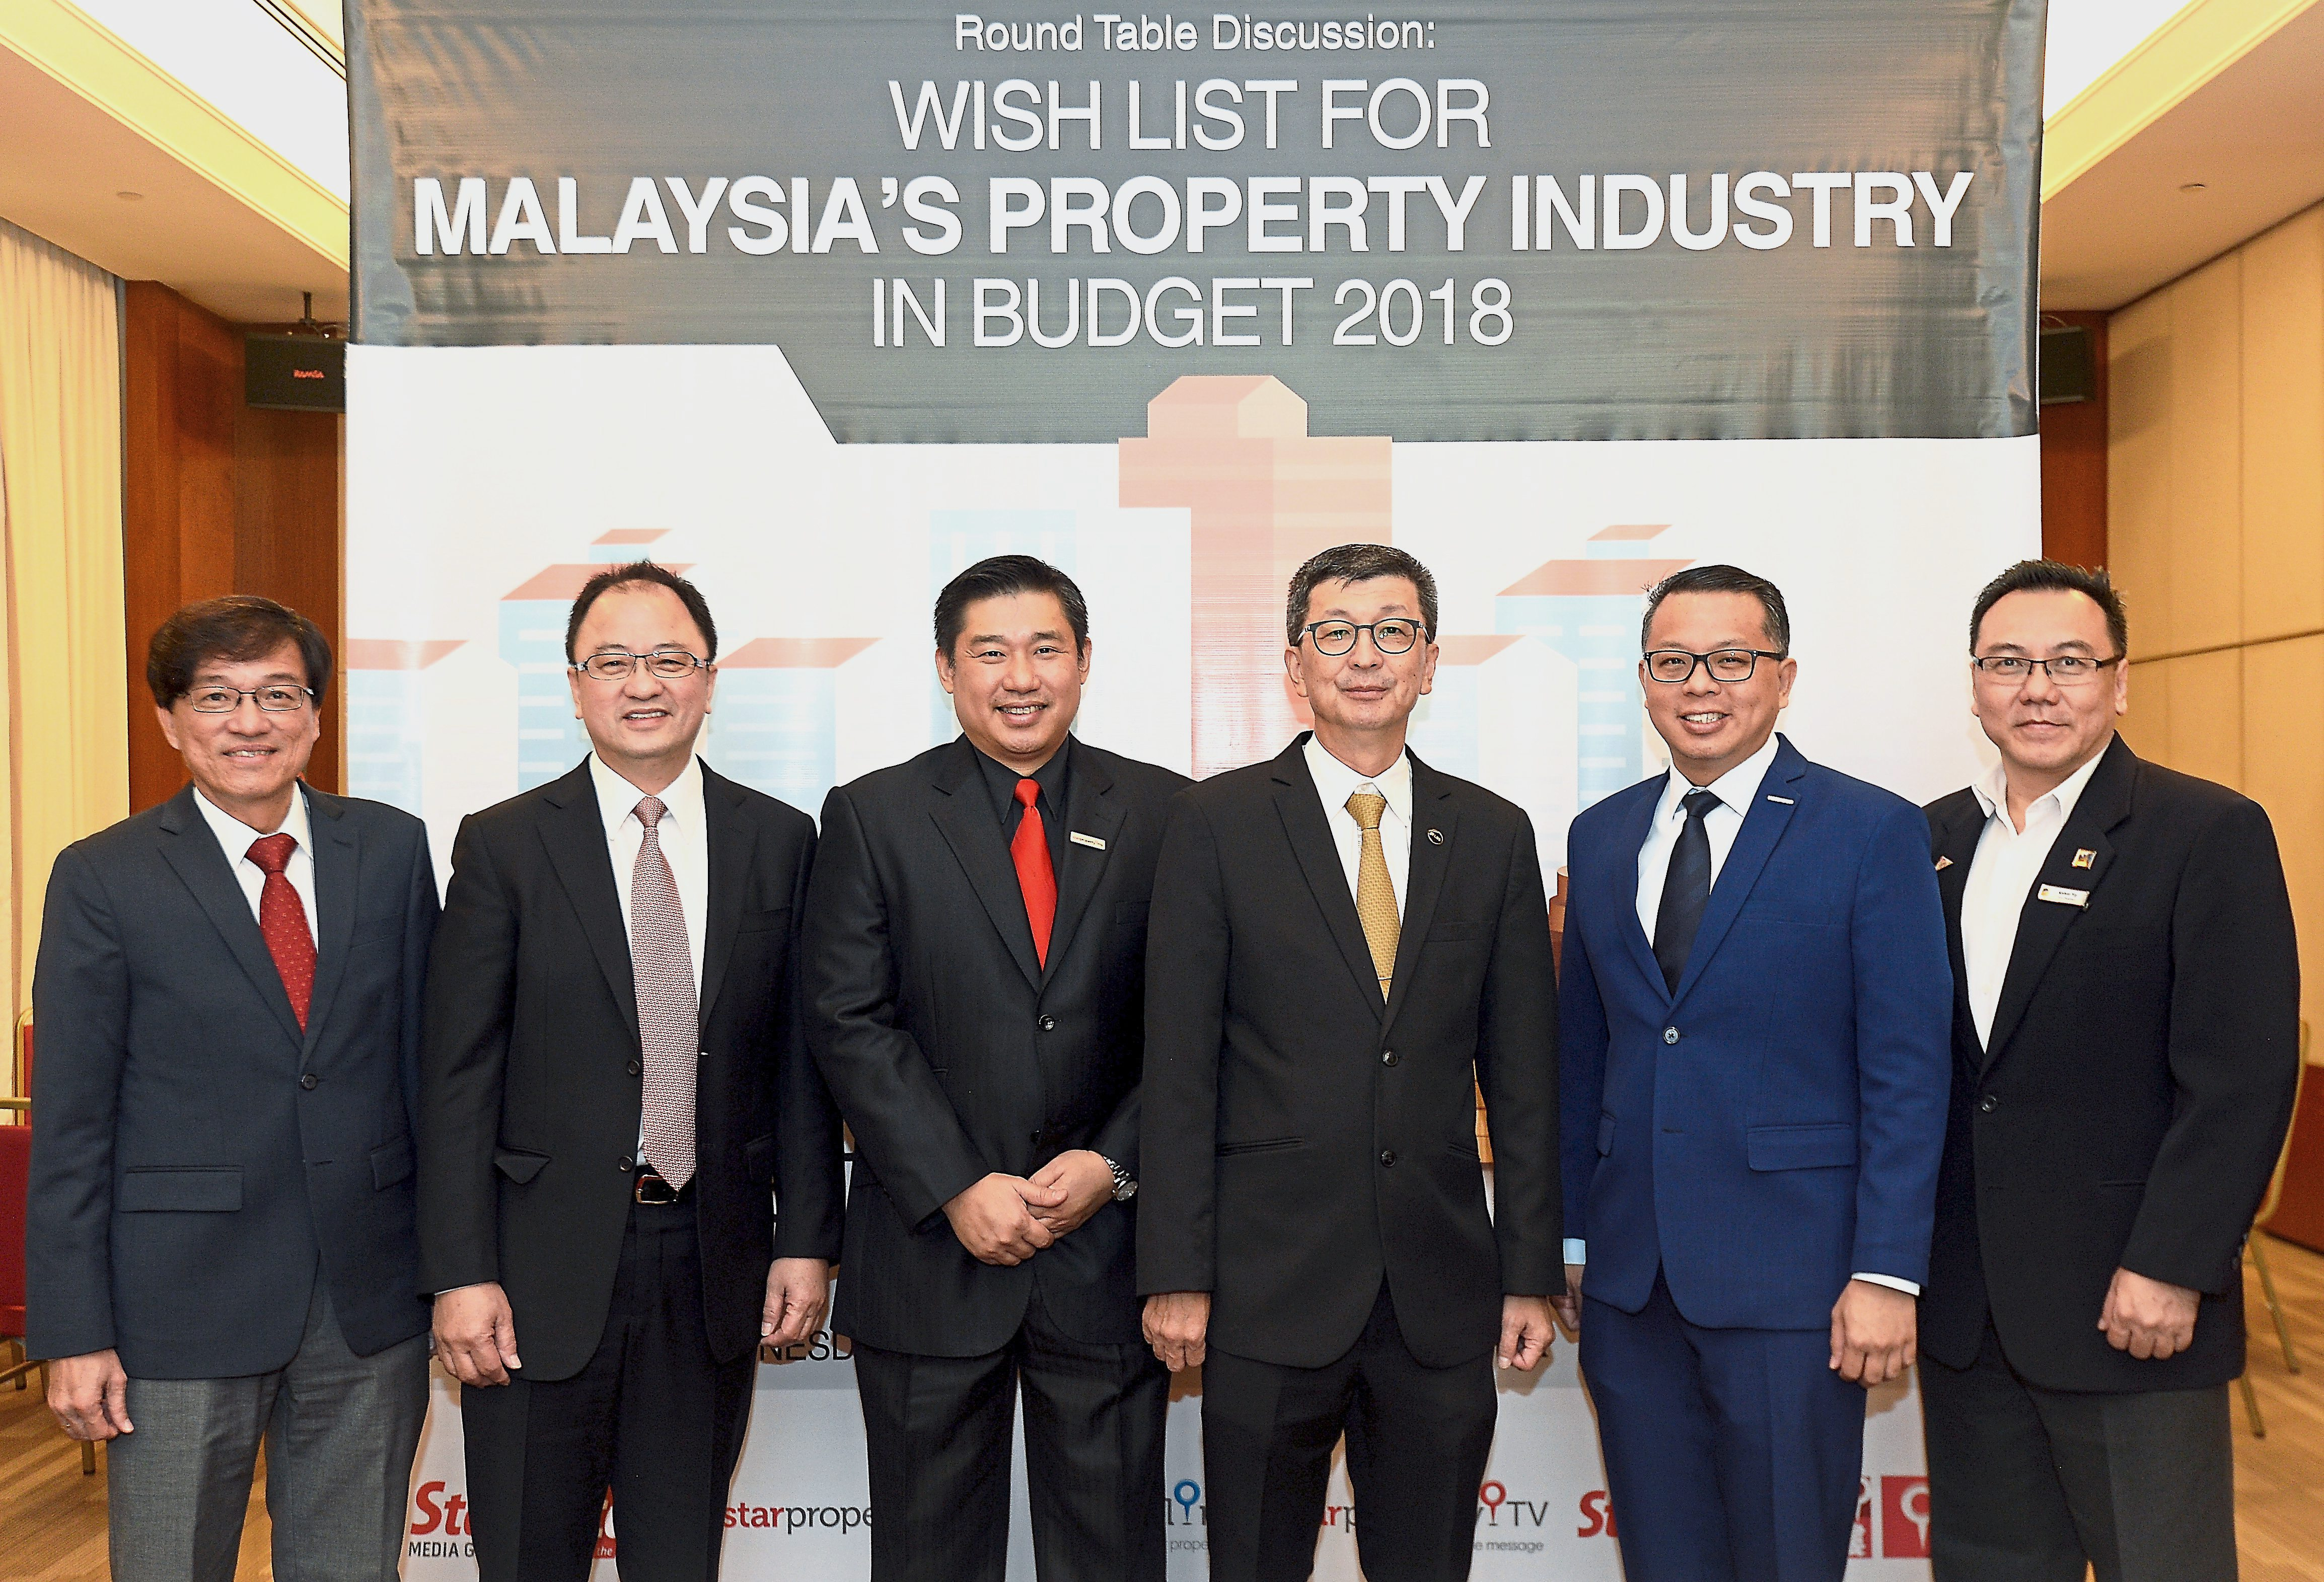 Budget 2018 roundtable. From left: Mah Sing Group Bhd chief executive officer Datuk Ho Hon Sang, JKG Land Bhd managing director Datuk Teh Kean Ming, StarProperty Sdn Bhd assistant general manager Ernest Towle, LBS Bina Group Bhd managing director Tan Sri Lim Hock San, IJM Land Bhd managing director Edward Chong and Malaysian Institute of Estate Agents (MIEA) vice president Kelvin Yip.